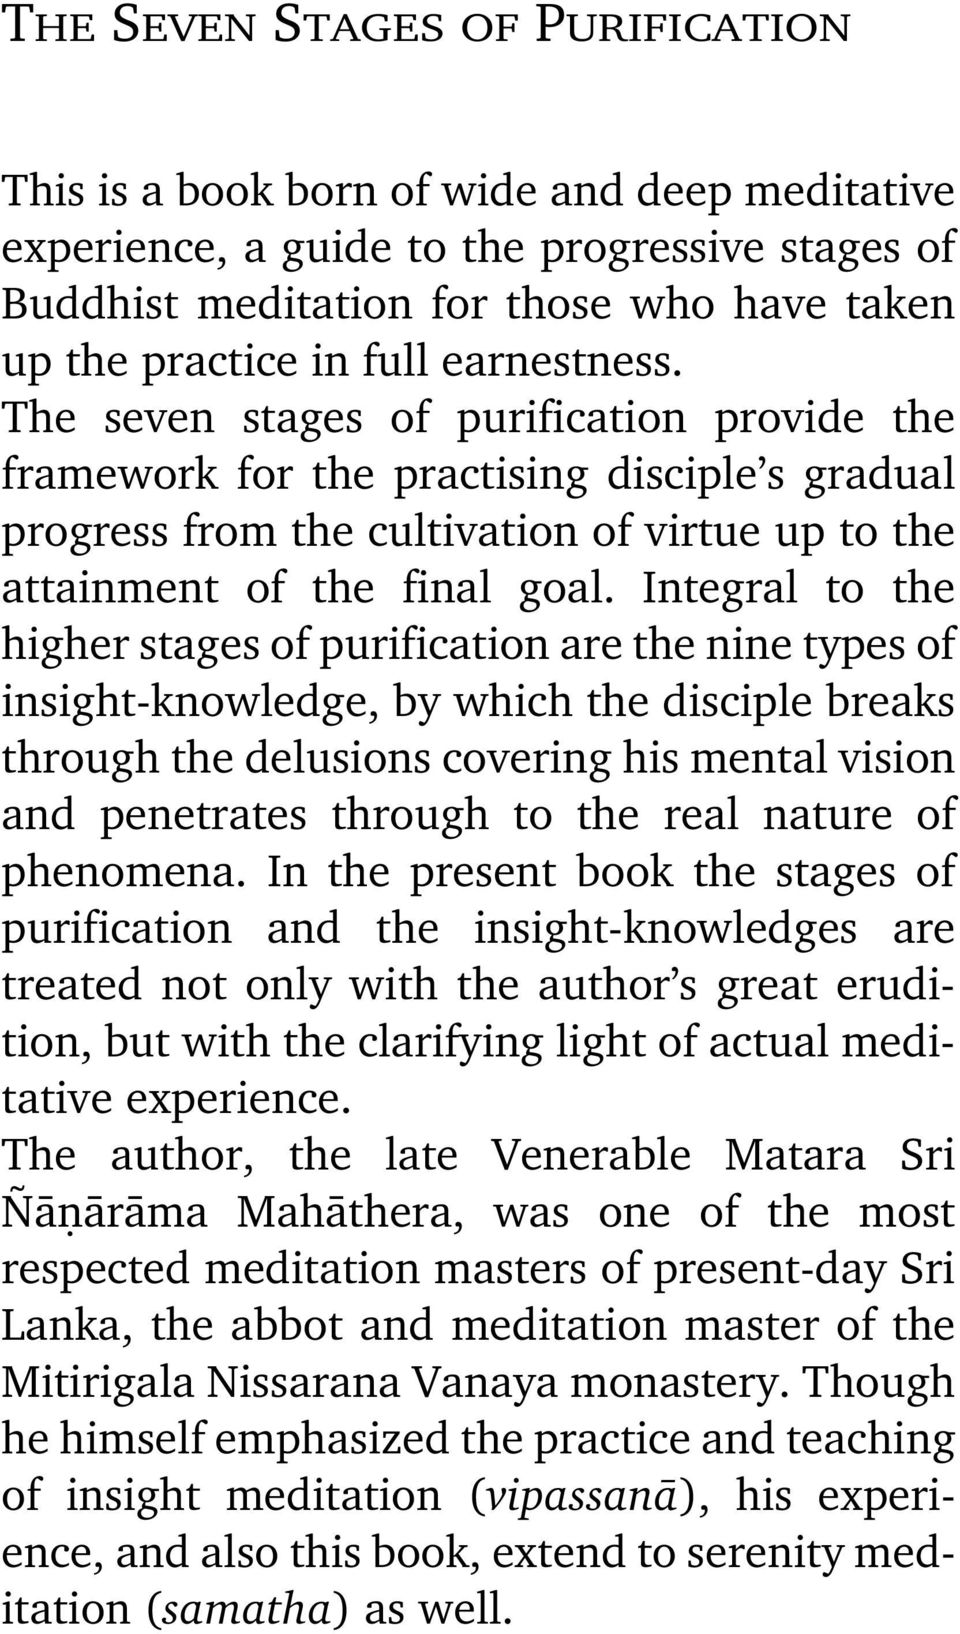 Integral to the higher stages of purification are the nine types of insight-knowledge, by which the disciple breaks through the delusions covering his mental vision and penetrates through to the real